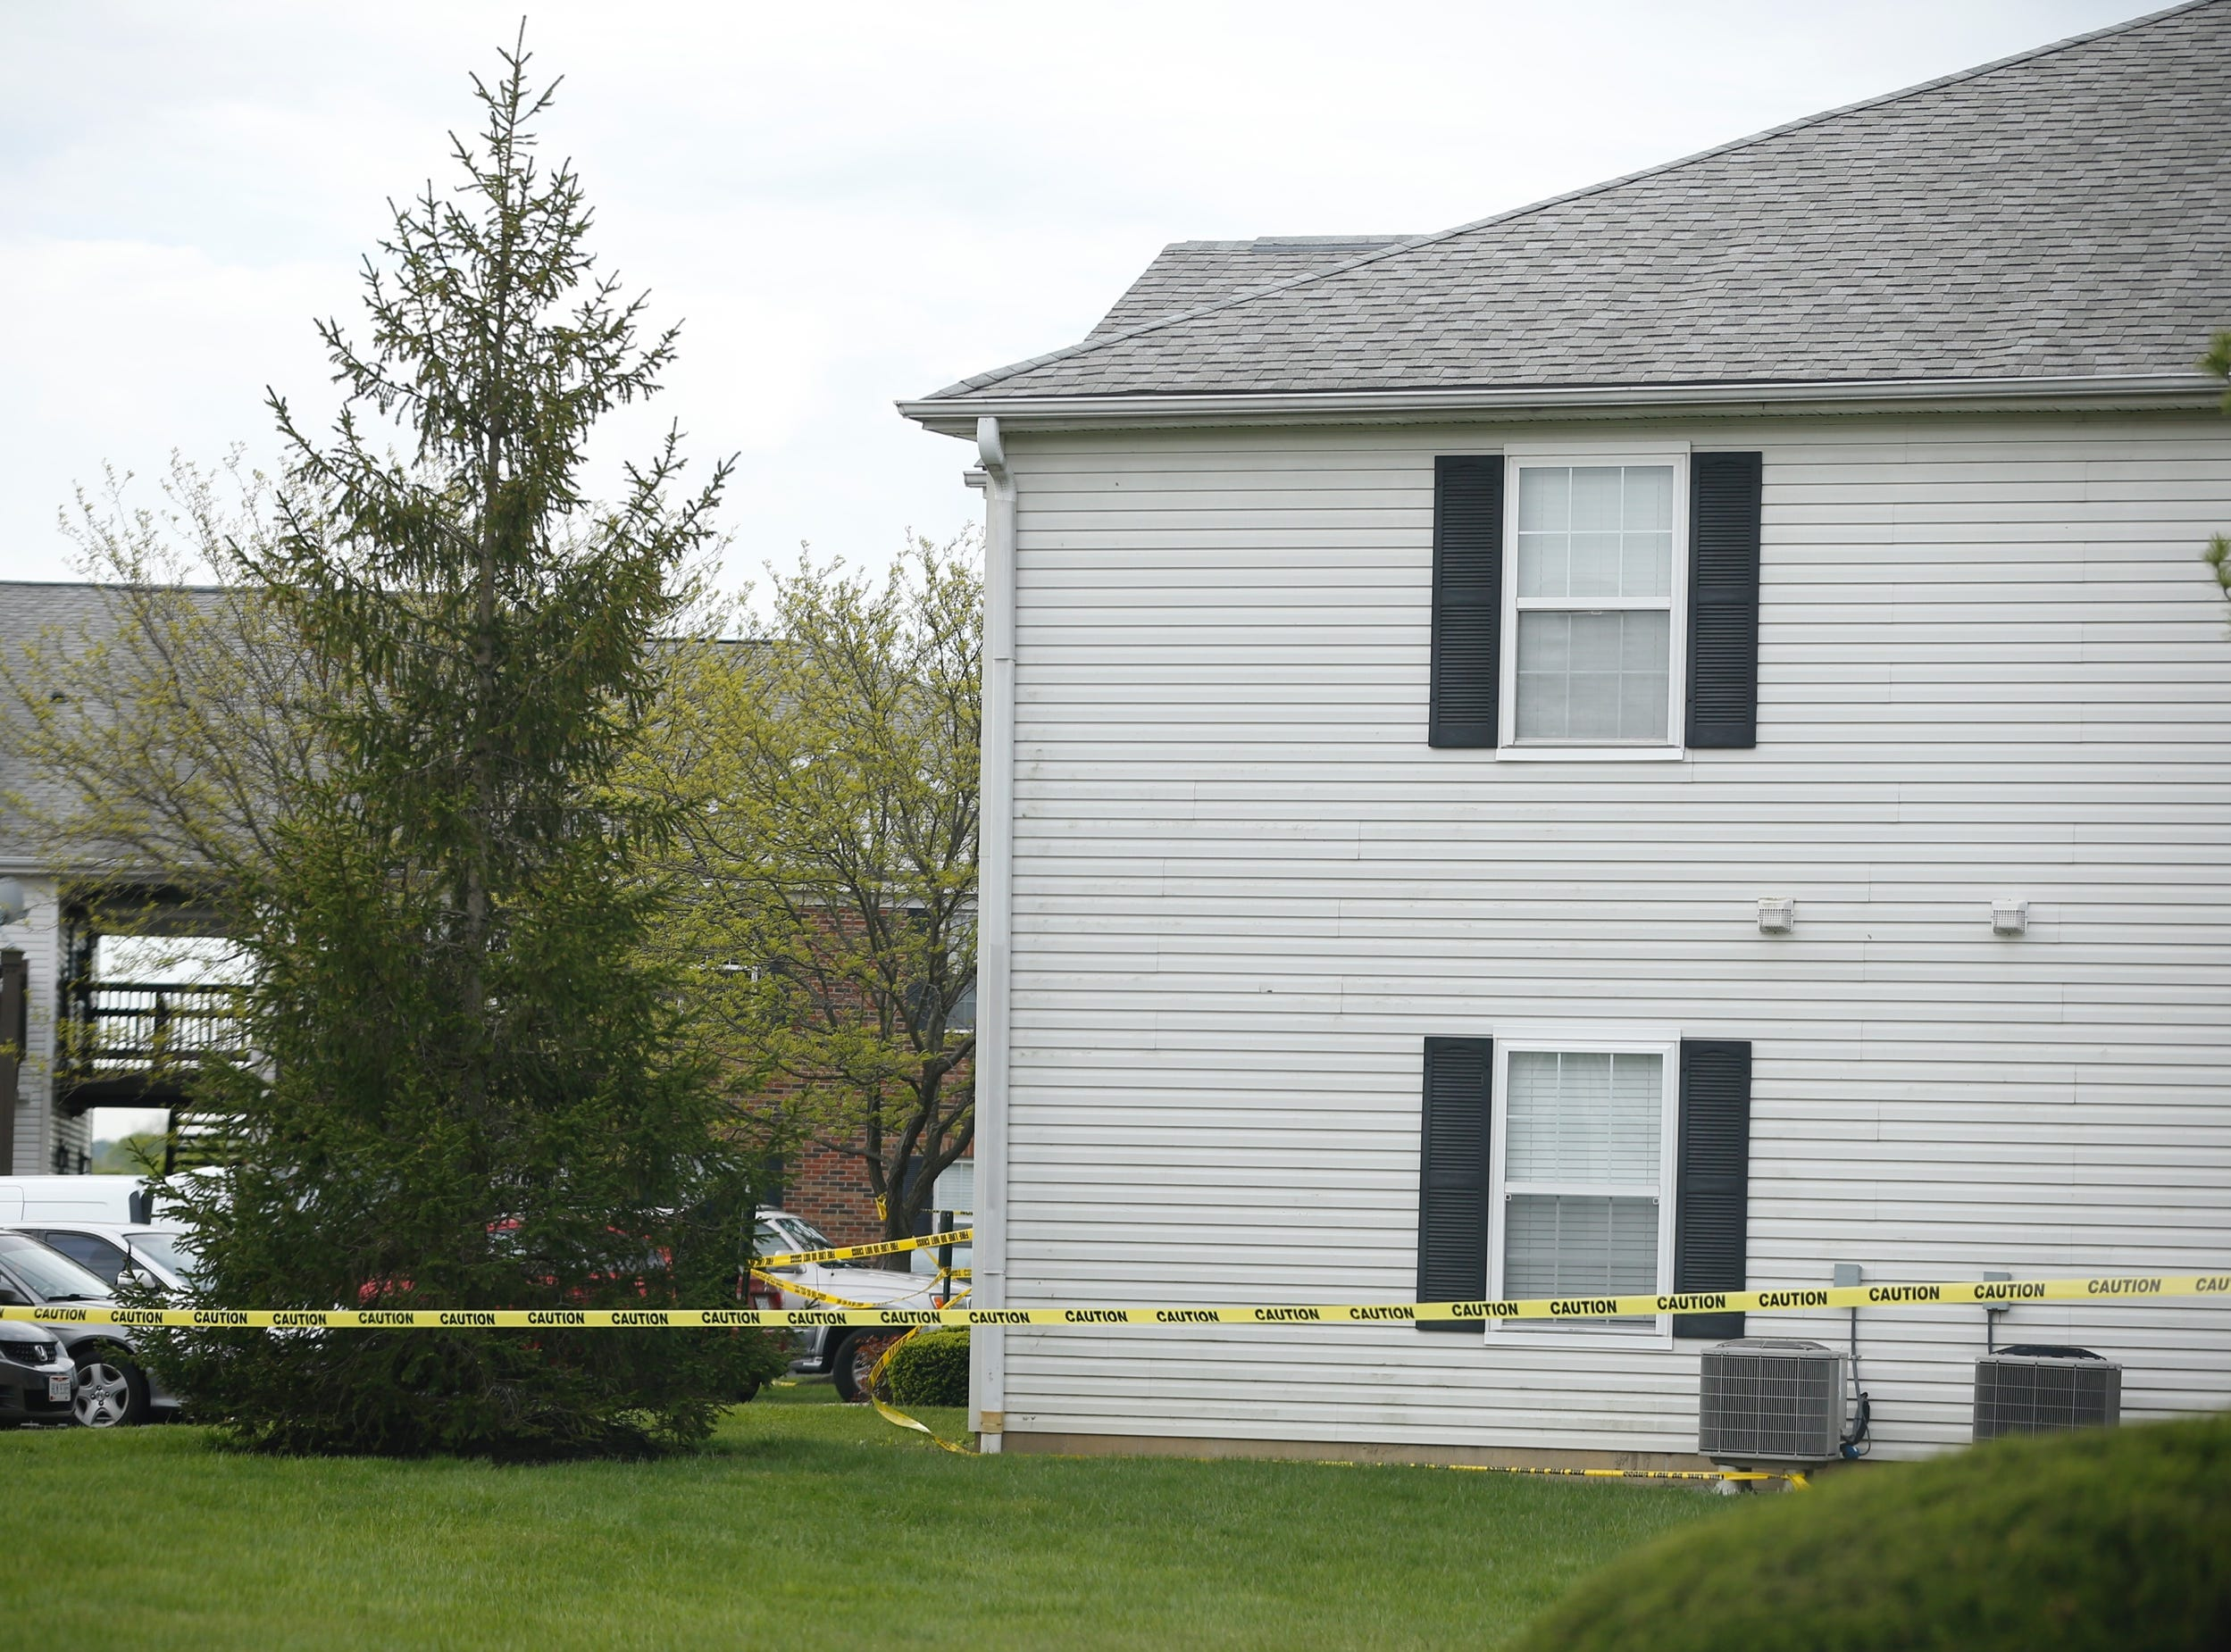 Police tape surrounds a West Chester Township apartment where 4 people were found dead Sunday night